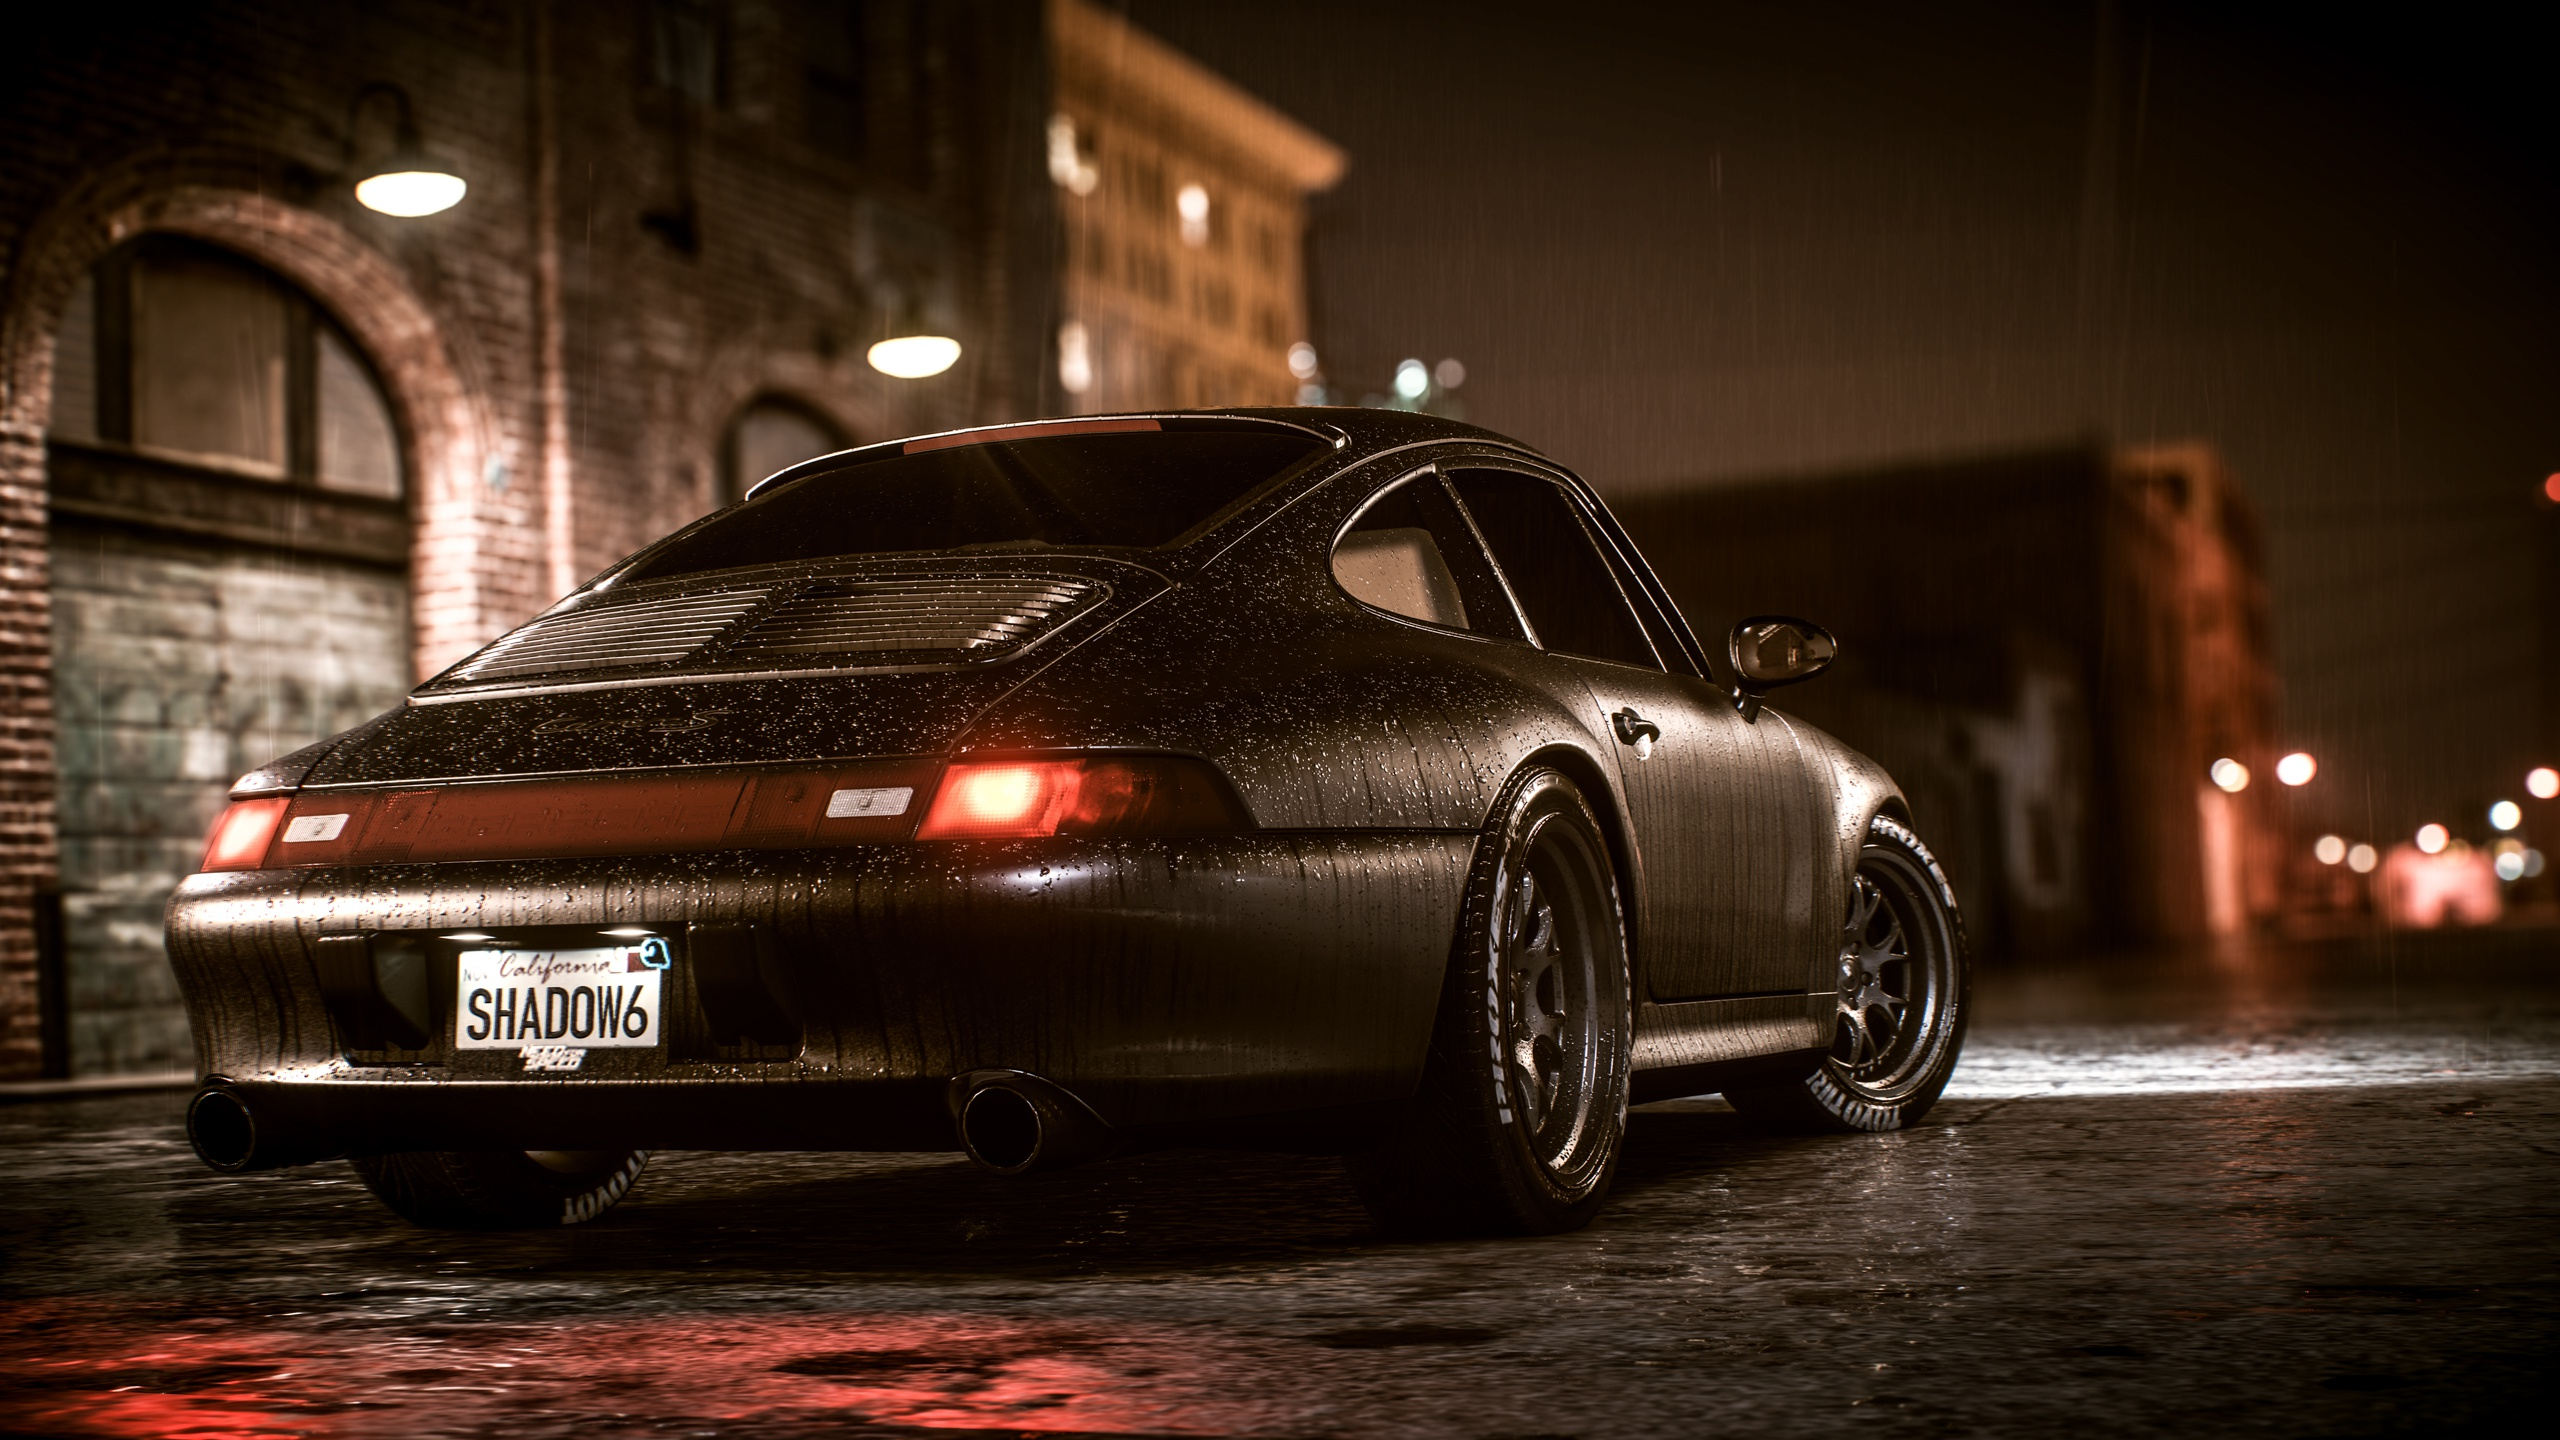 Need for speed 2015 wallpapers pictures images for Need for speed wallpaper